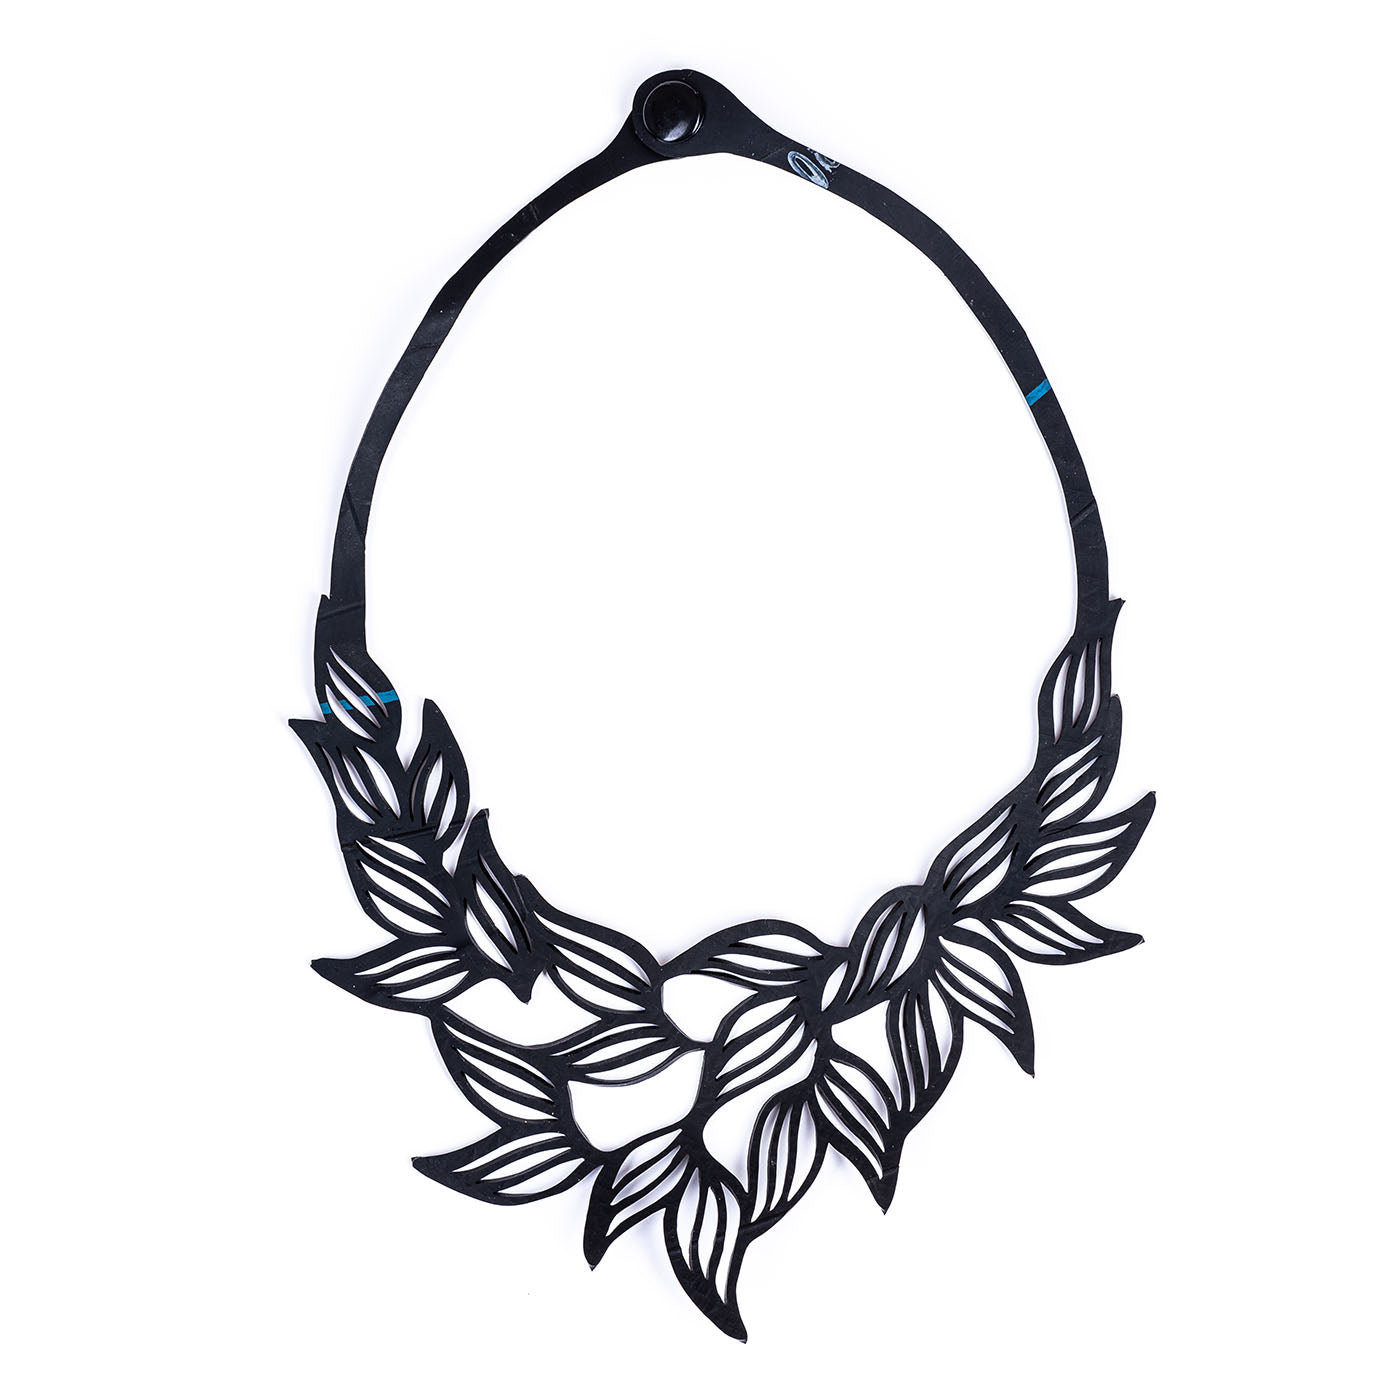 Jasmine Recycled Rubber Necklace by Paguro Upcycle